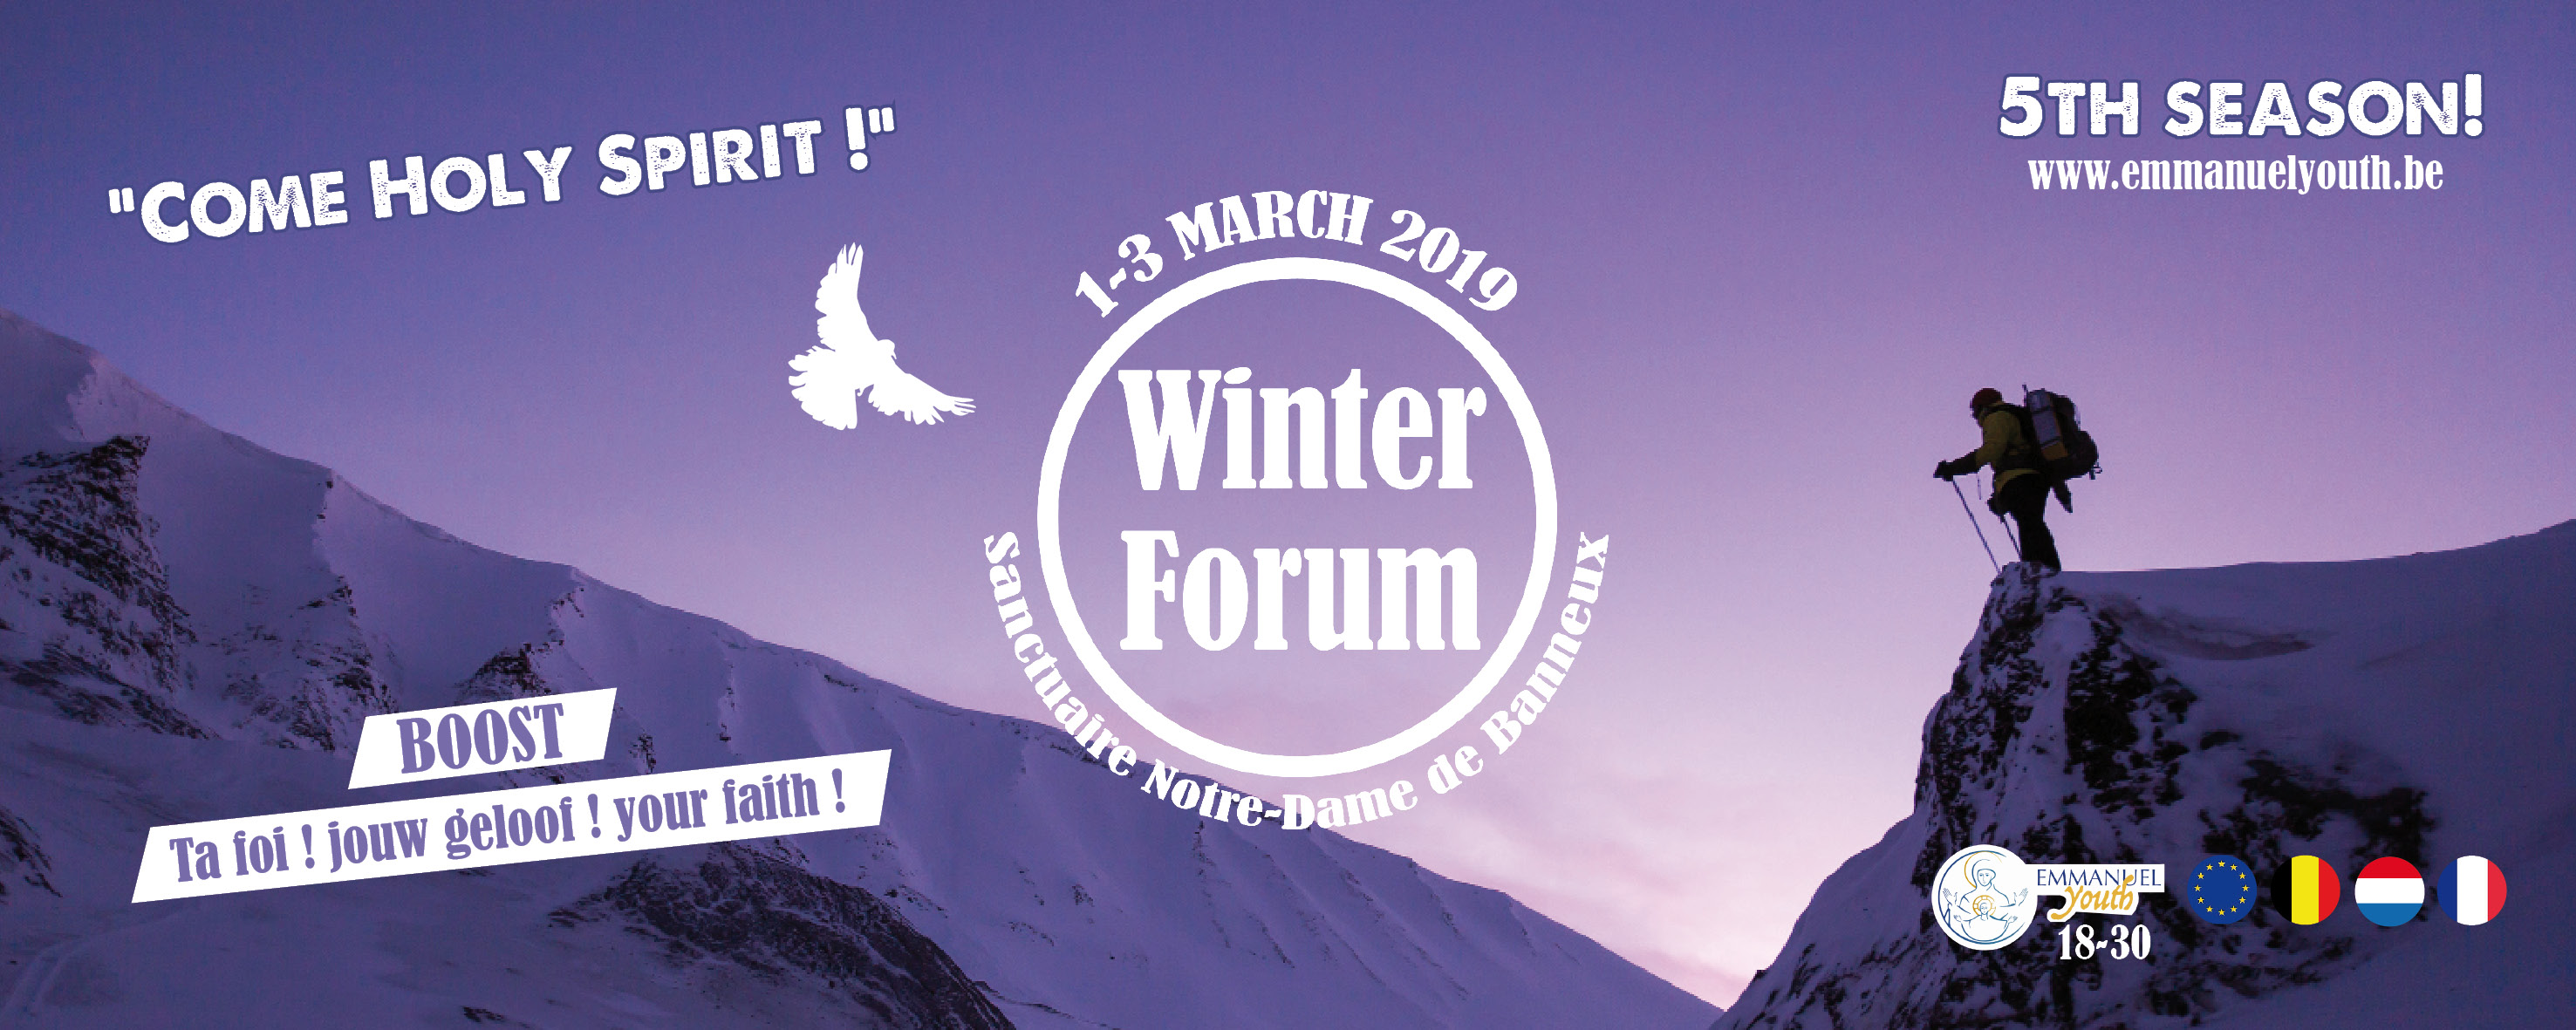 Winter Forum 2019